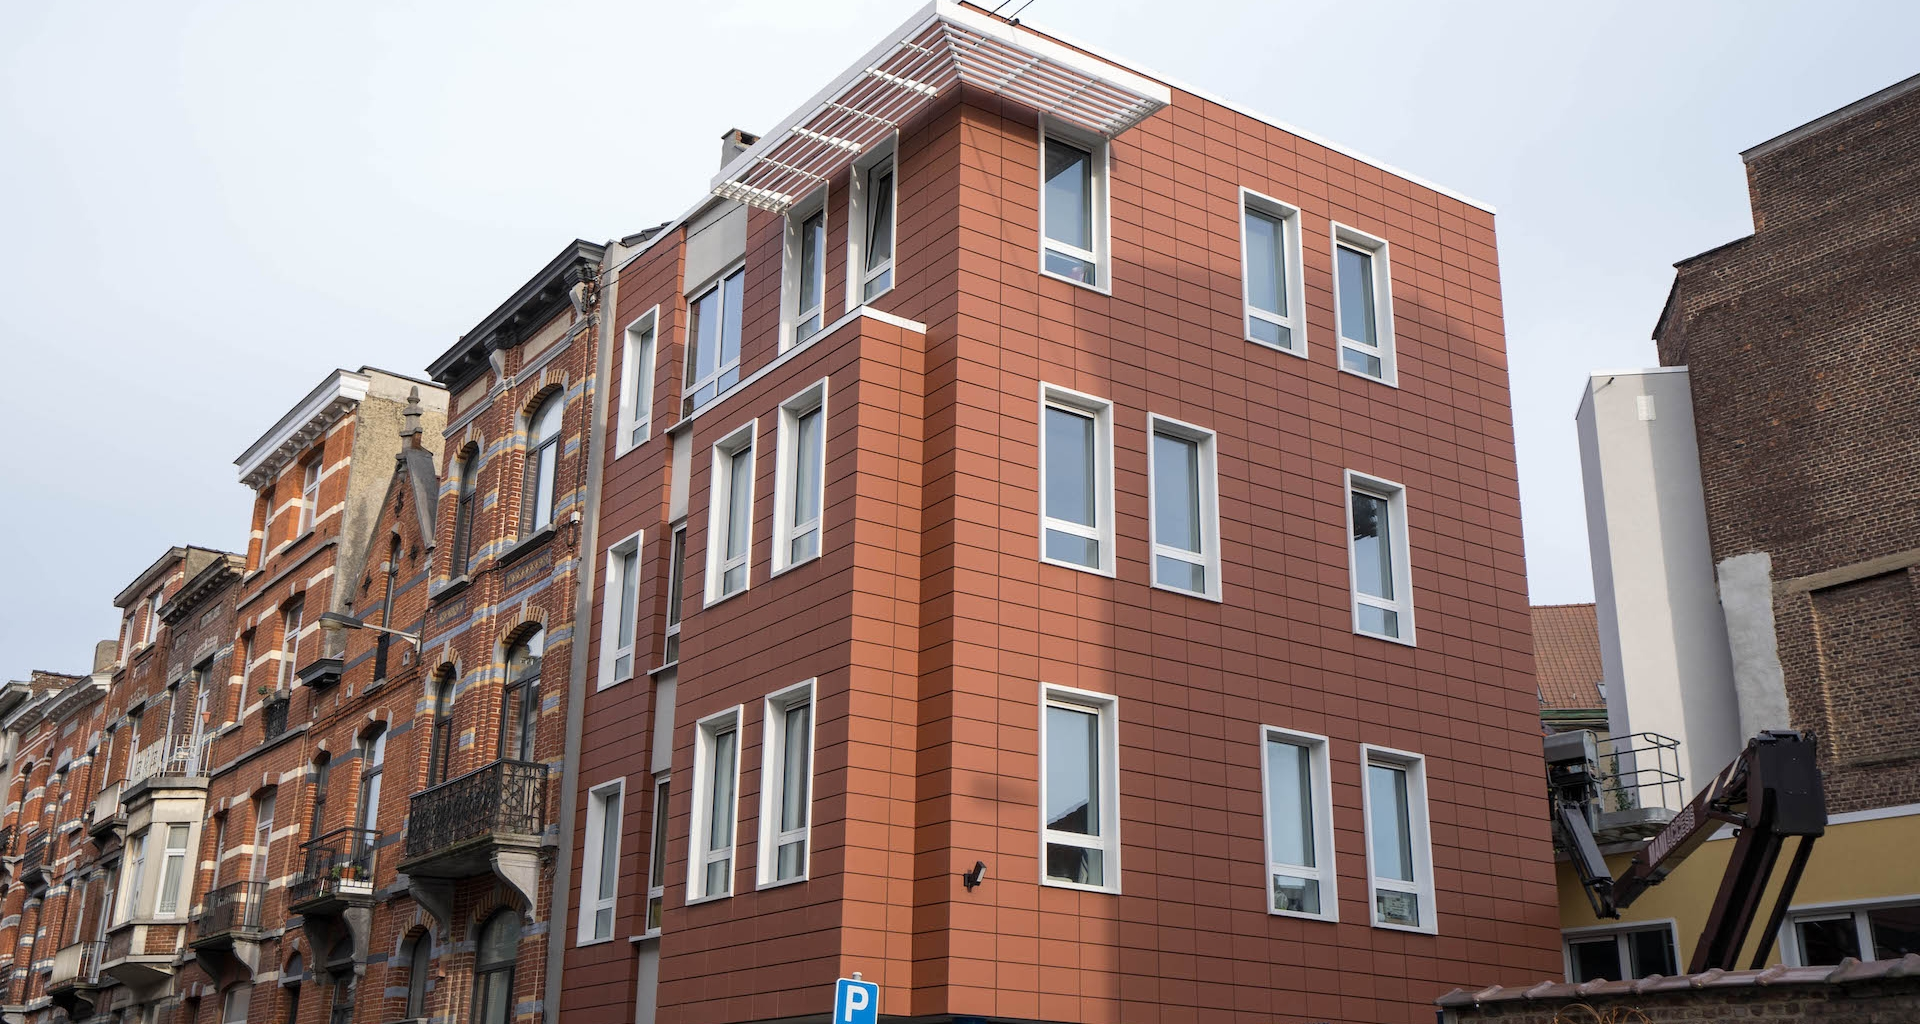 Brussels terracotta facade cladding